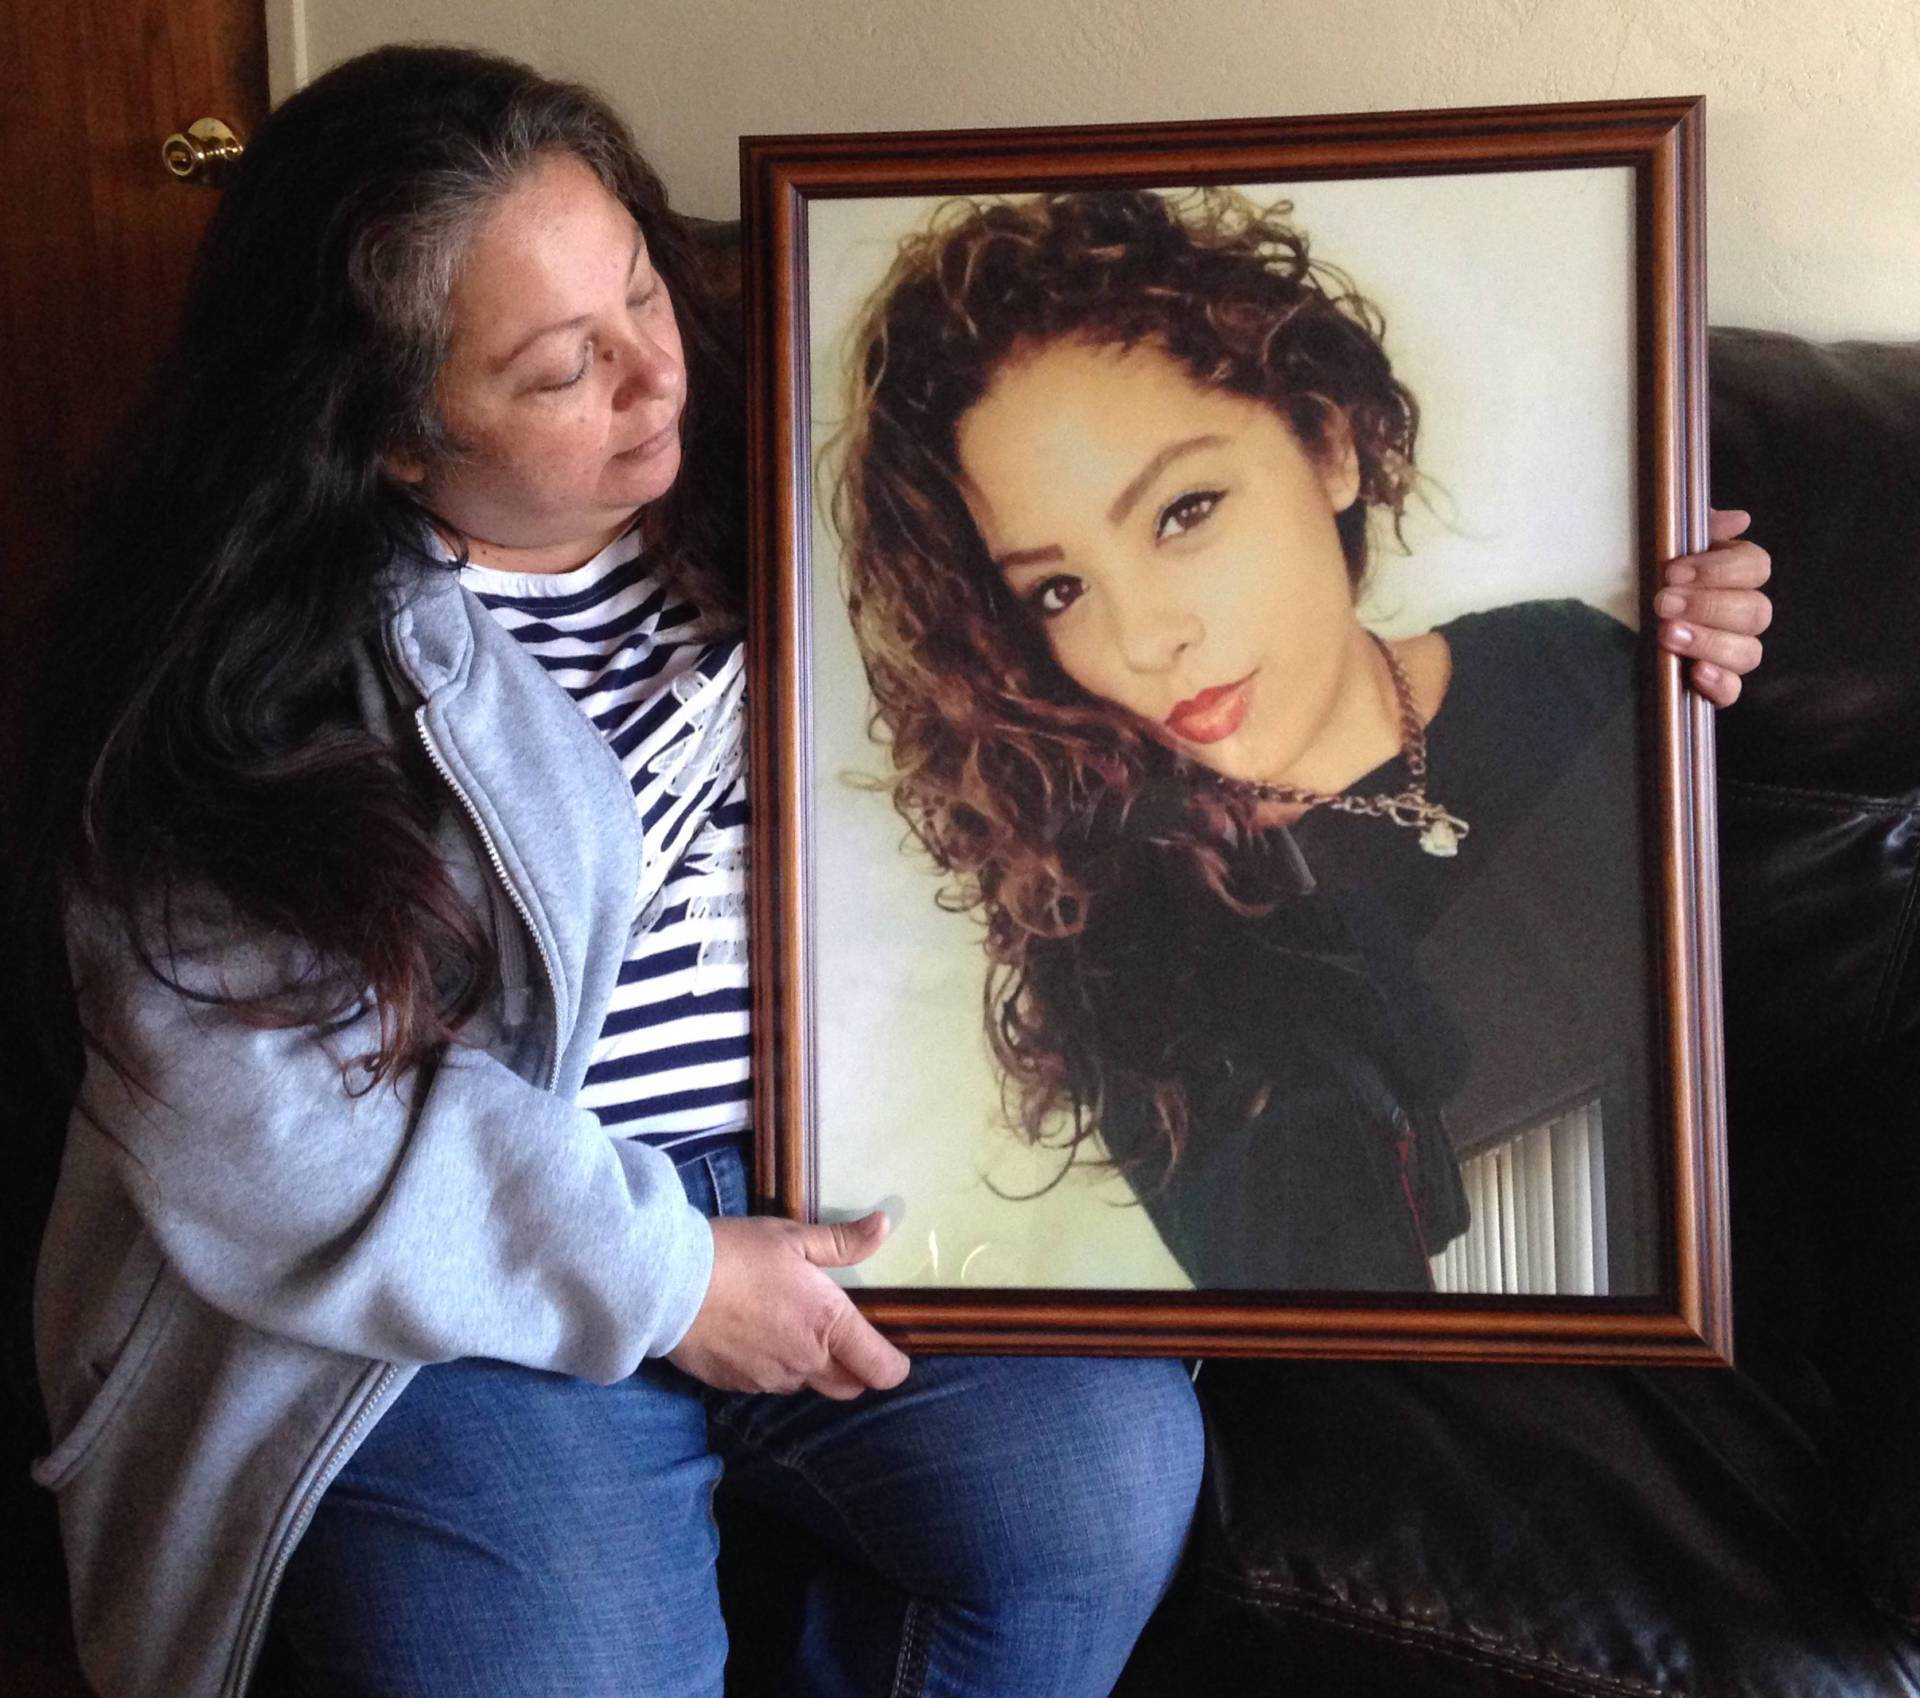 Maria Spivey, a bus driver in San Diego, looks at a photo of her daughter, Chloe Roston.